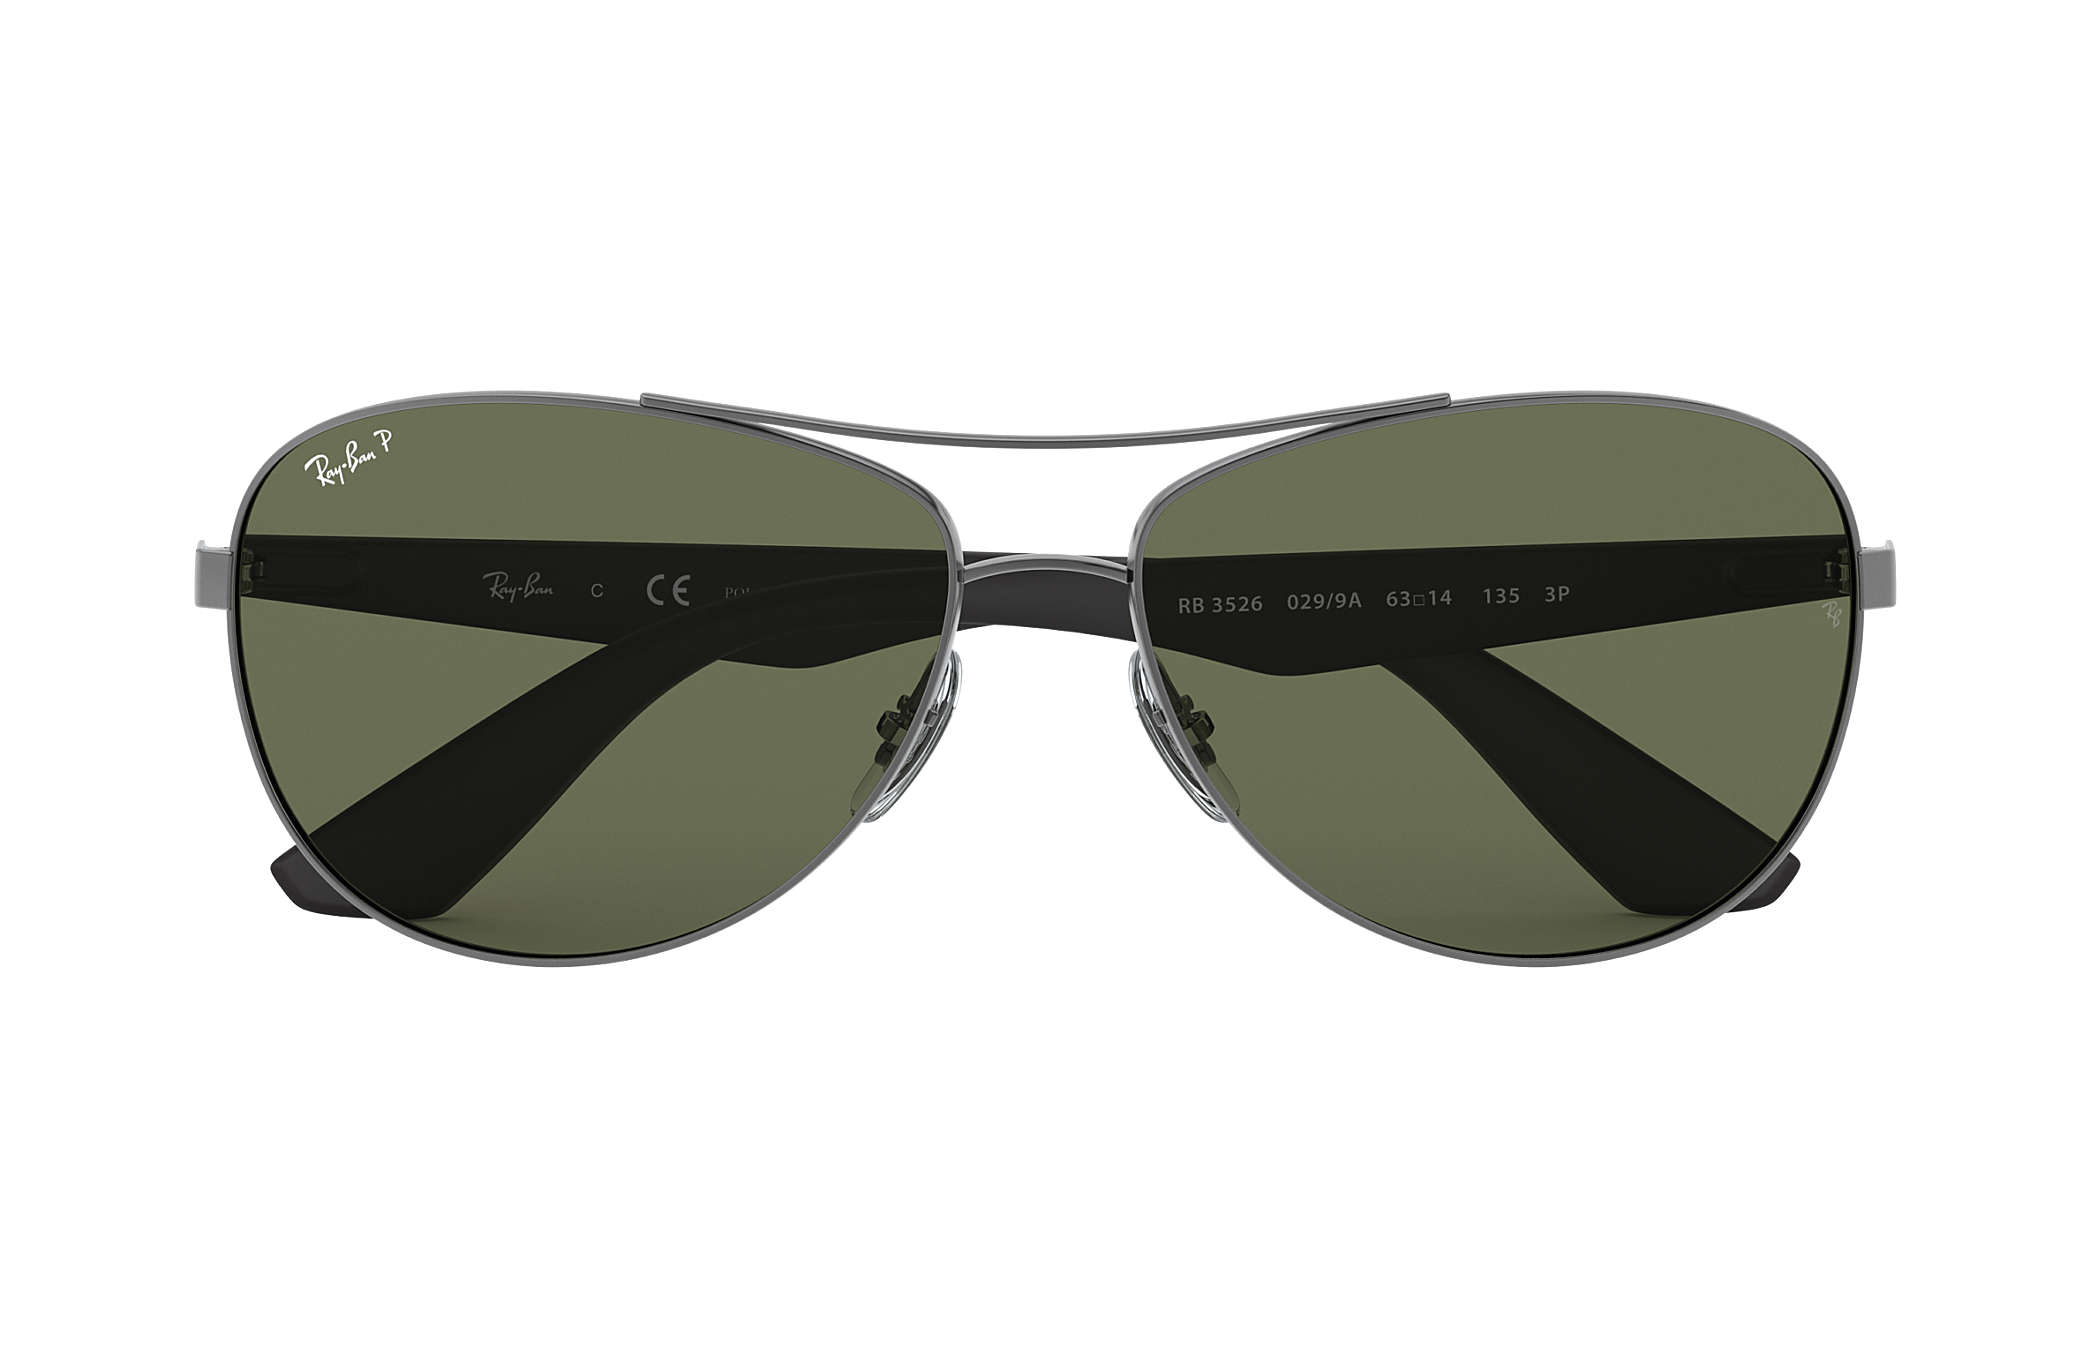 b7349c99ae0ba Ray-Ban RB3526 Gunmetal - Metal - Green Polarized Lenses ...